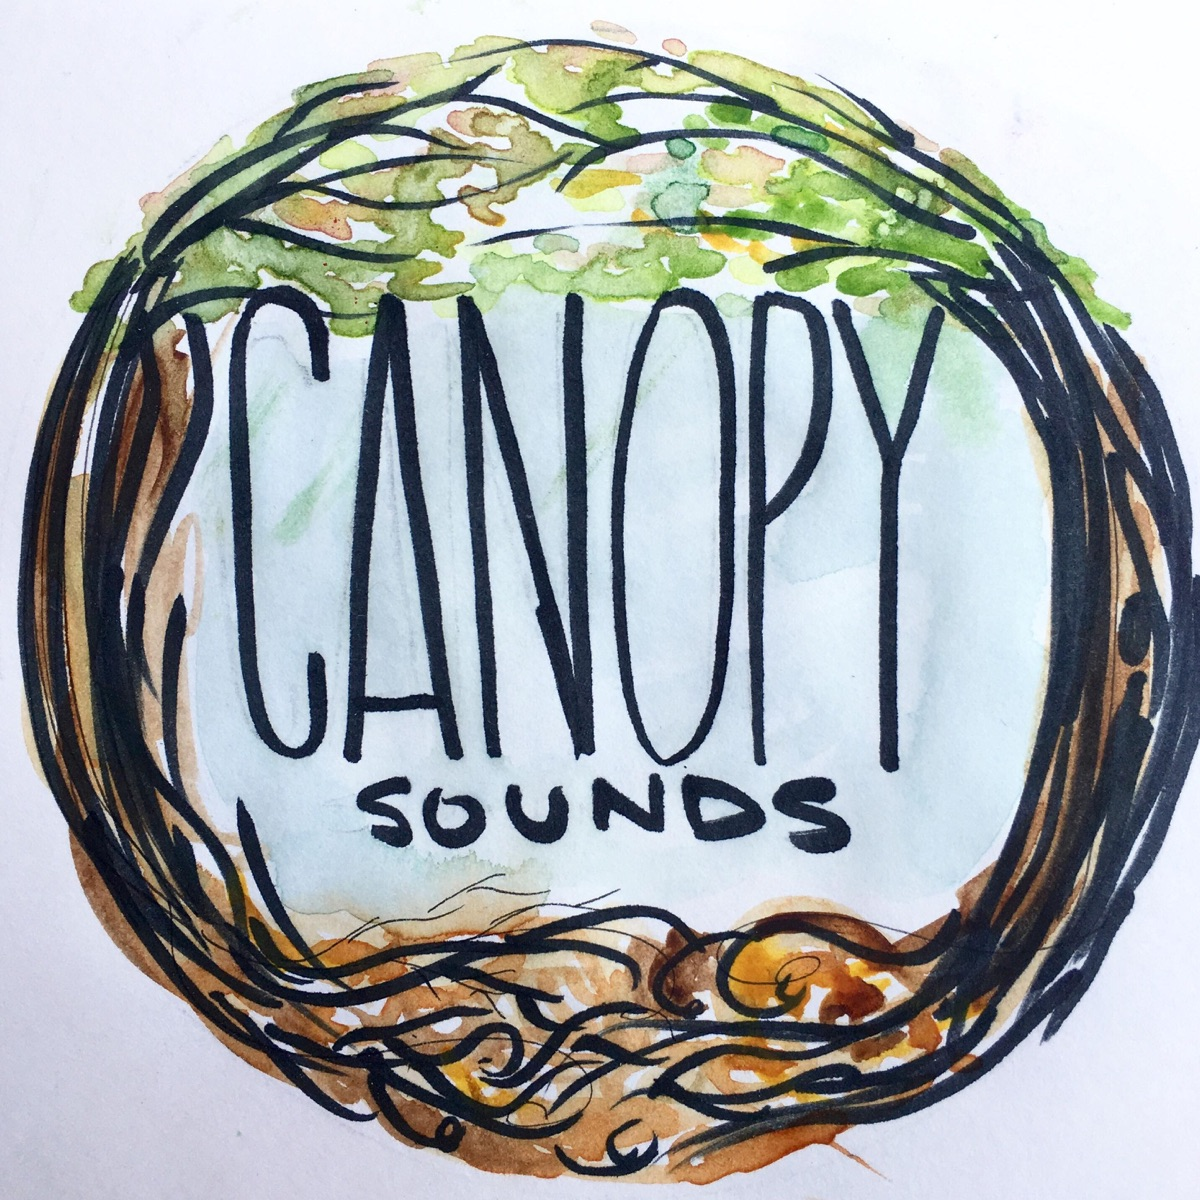 Canopy Sounds 67: Arina Mur